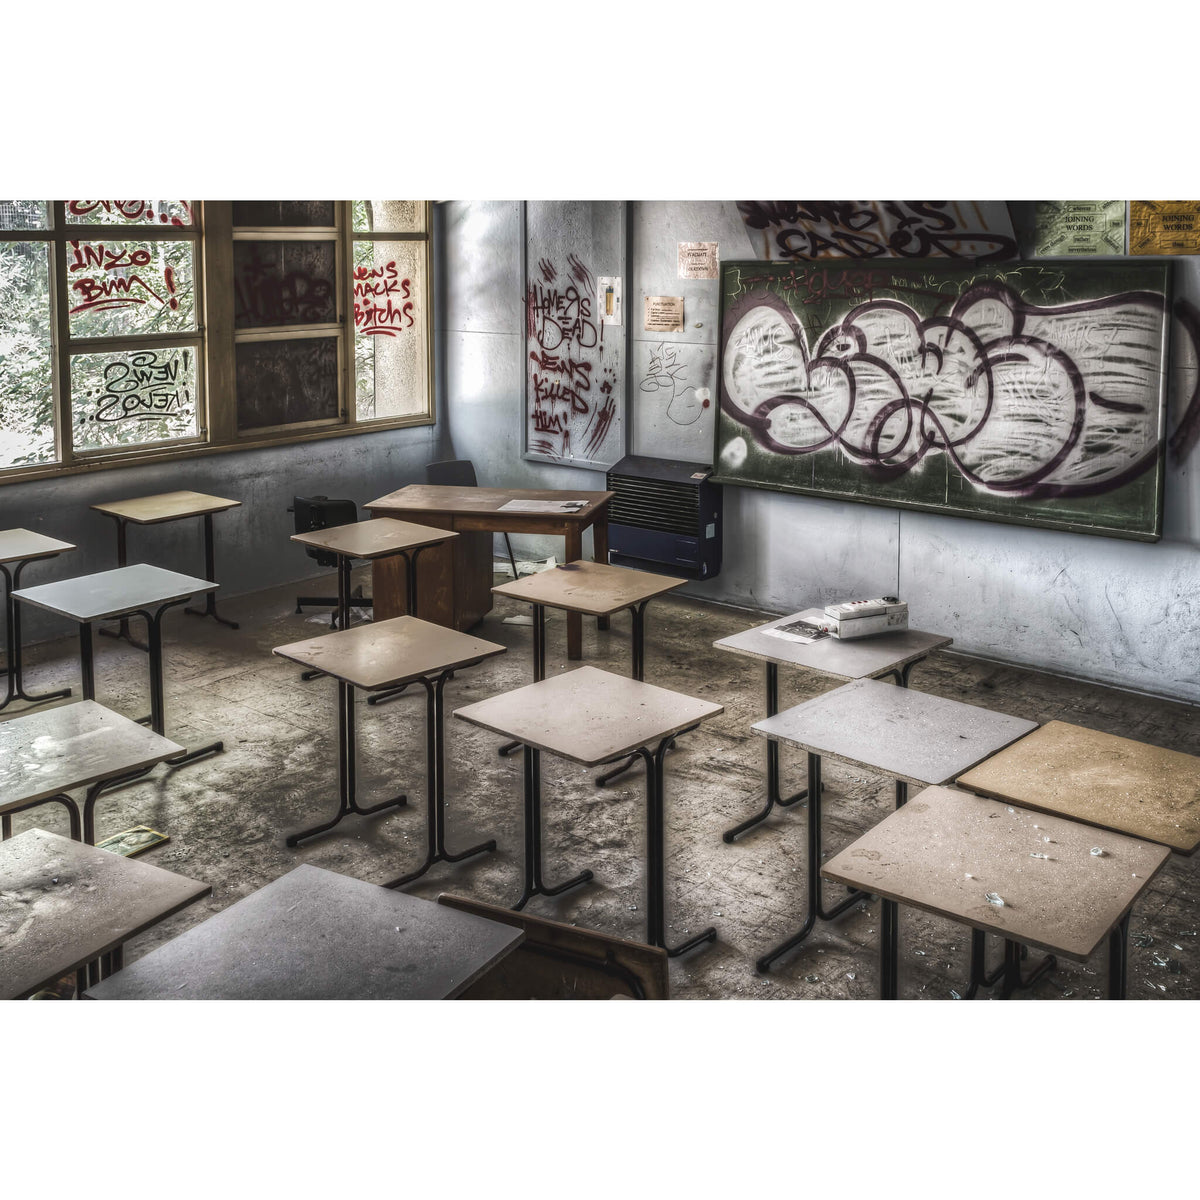 Classroom | Macquarie Boys Technology High Fine Art Print - Lost Collective Shop